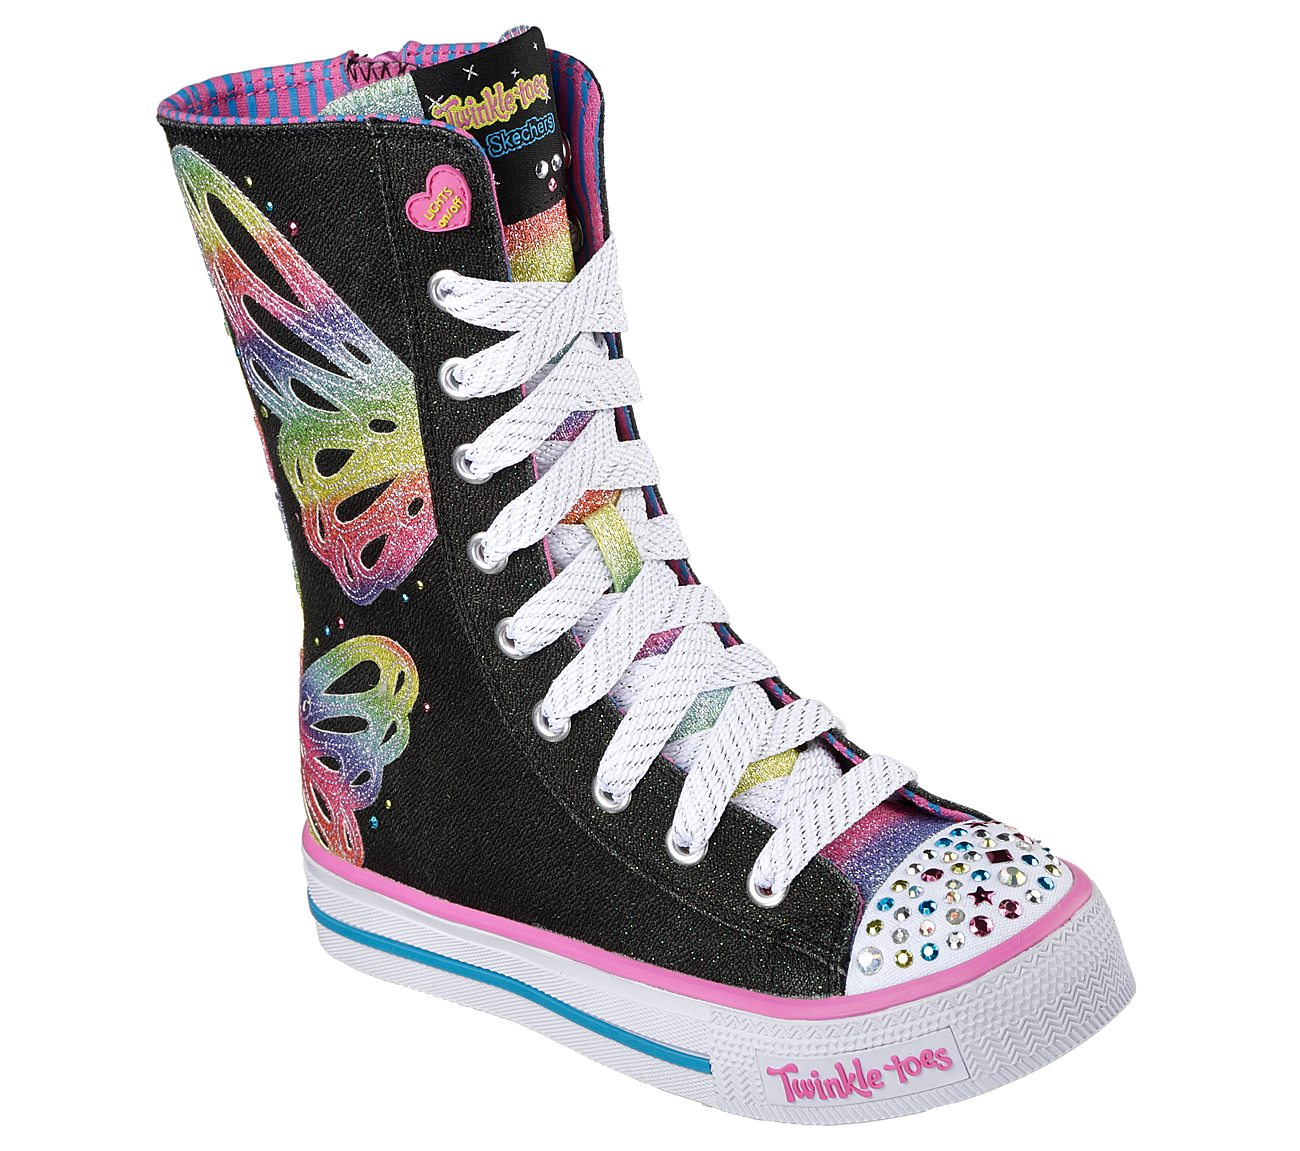 Buy SKECHERS Twinkle Toes: Shuffles Flutter Fun S Lights Shoes XOZOq